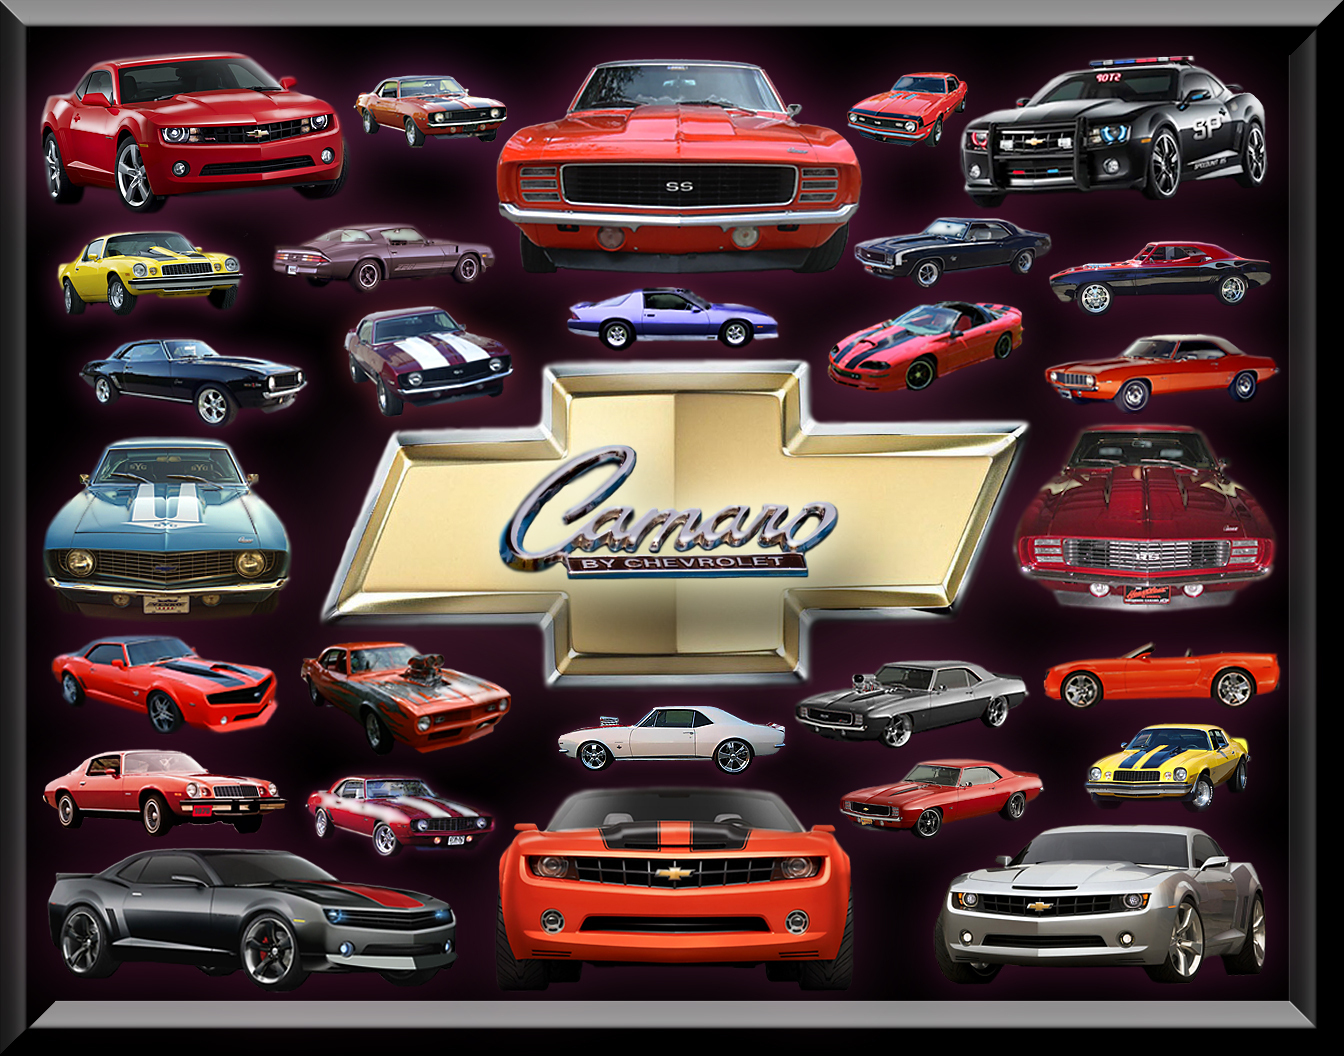 Camaros Images Chevy Camaro Over The Years Hd Wallpaper